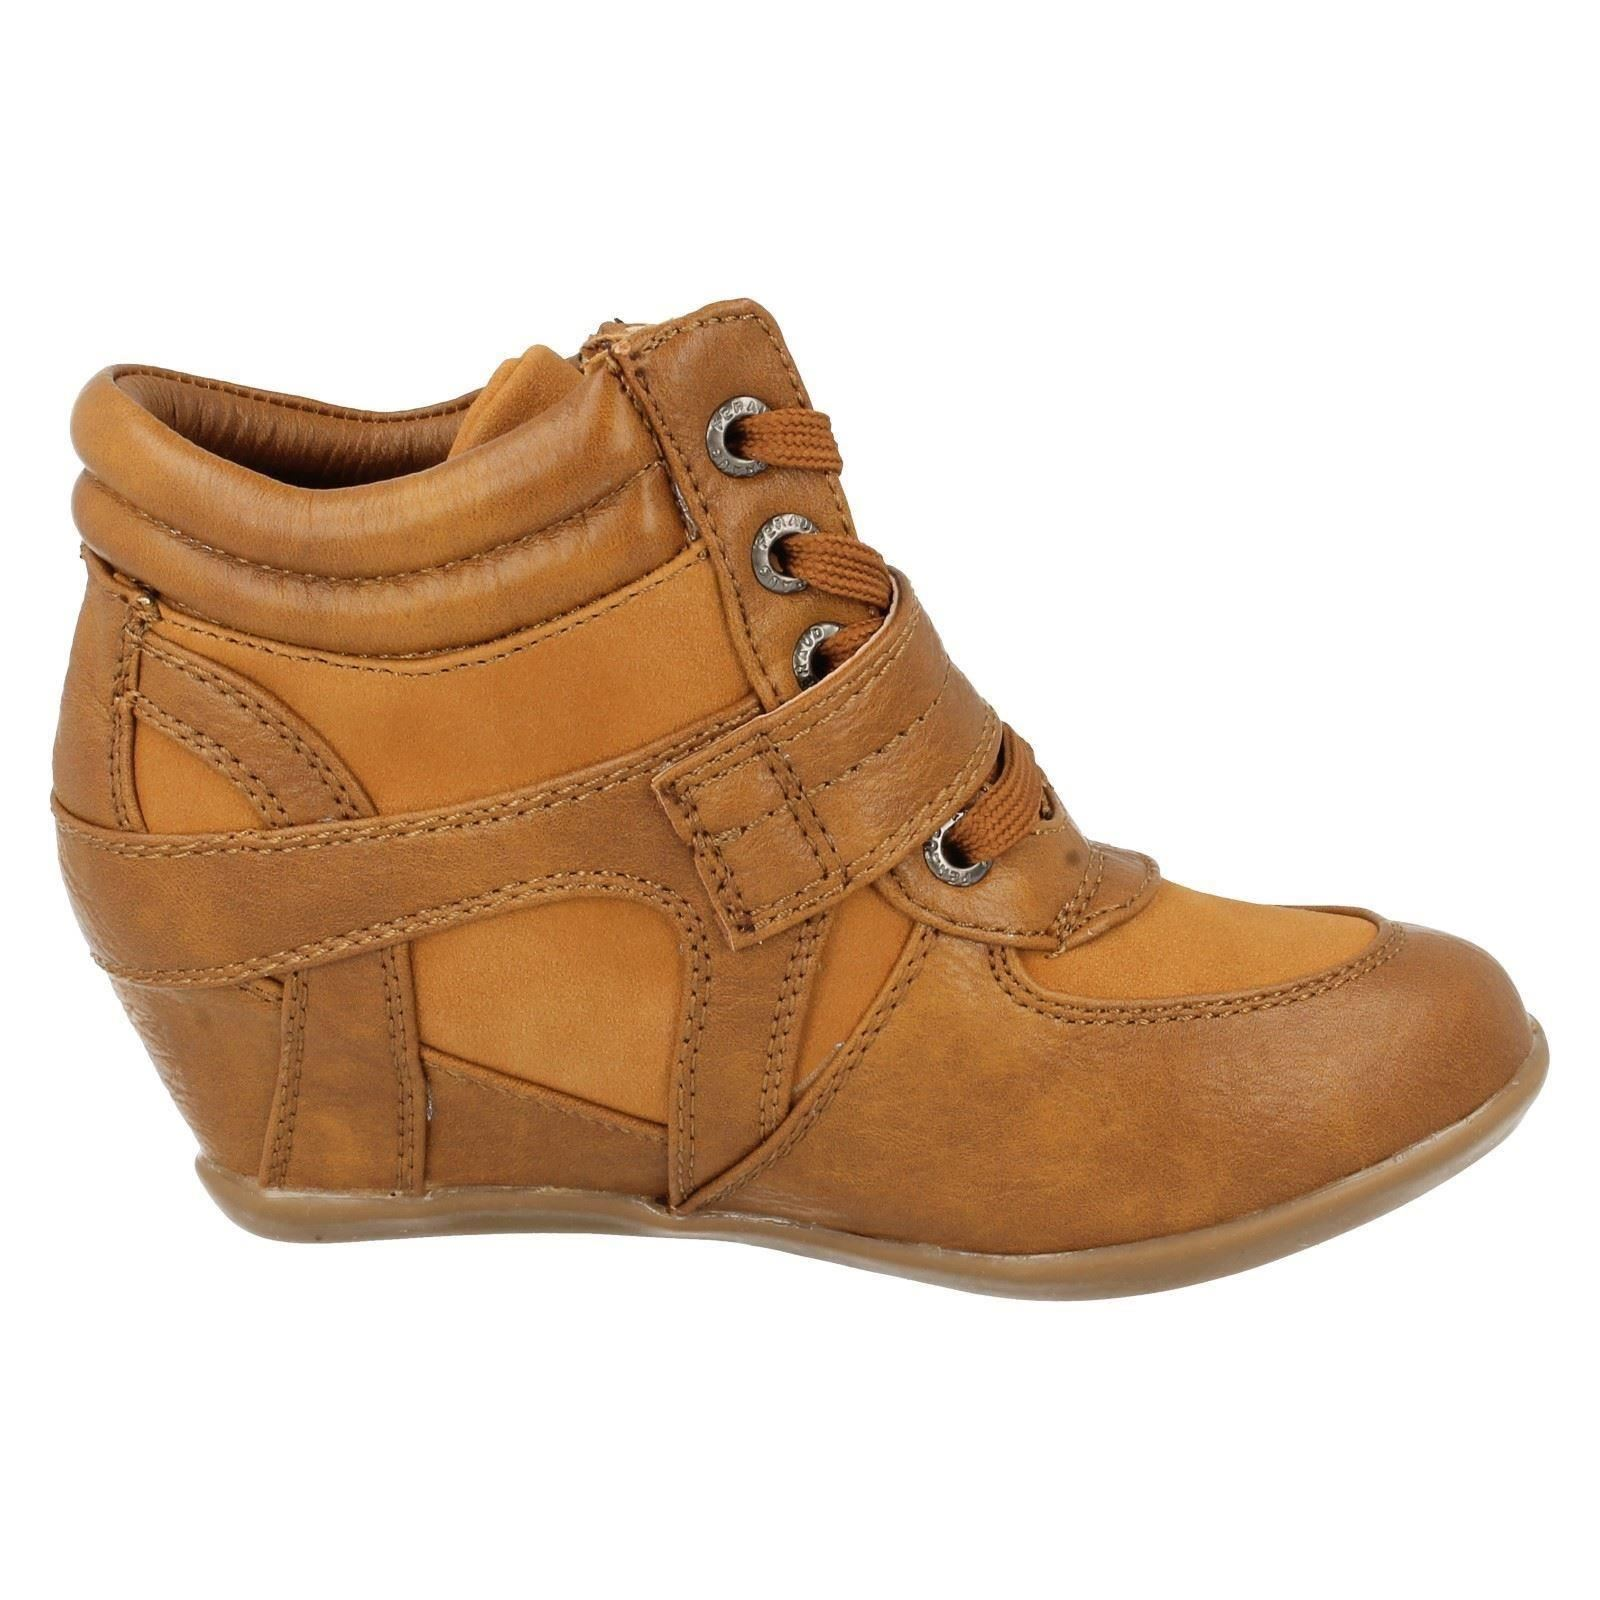 Girls Cutie Qt Ankle Boots Style - H5013